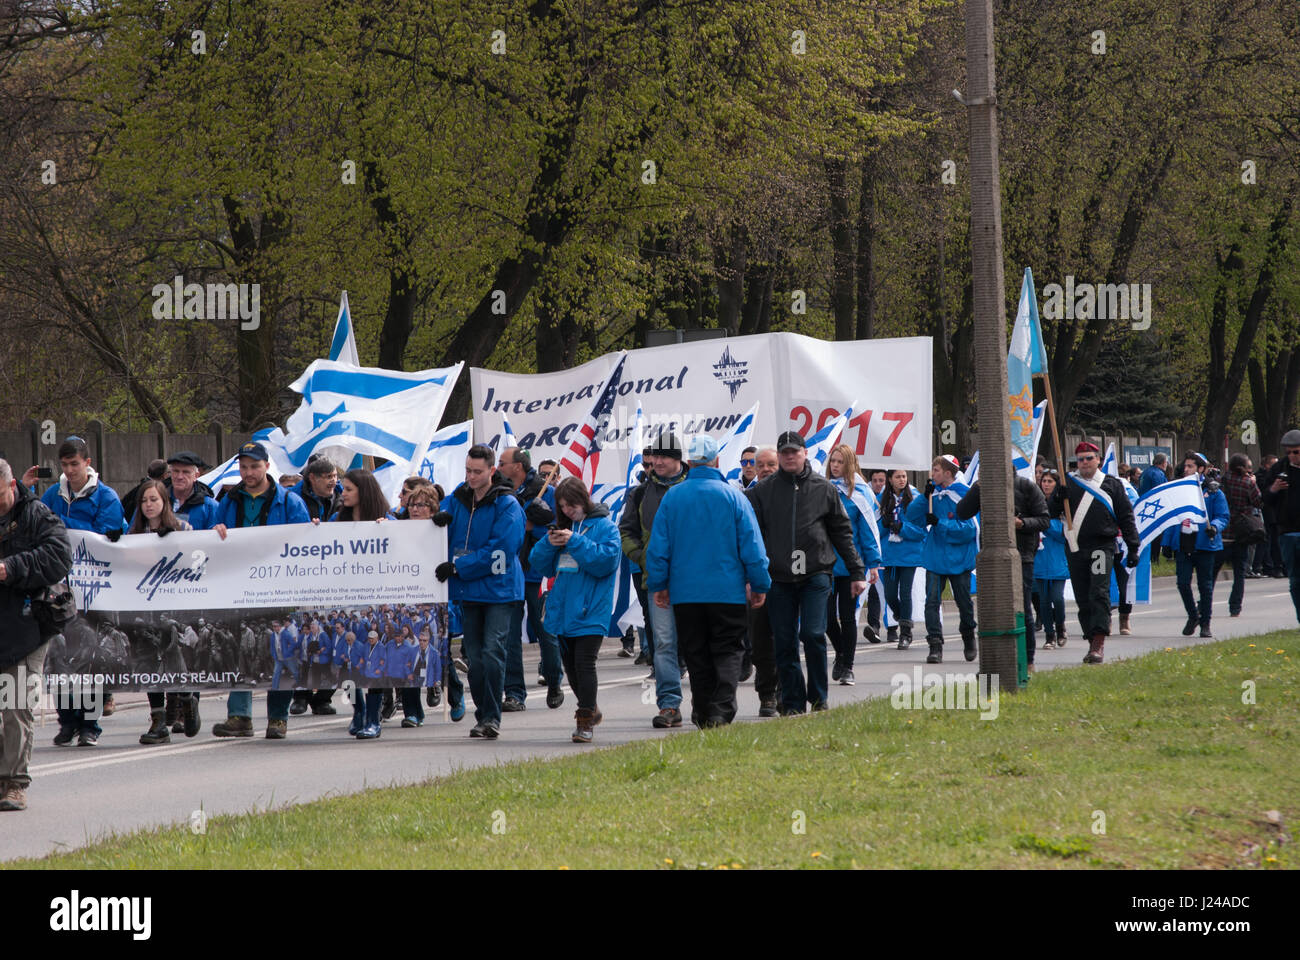 Auschwitz, Birkenau, Poland. 24th Apr, 2017. Several thousand young people from over 40 countries are taking part - Stock Image